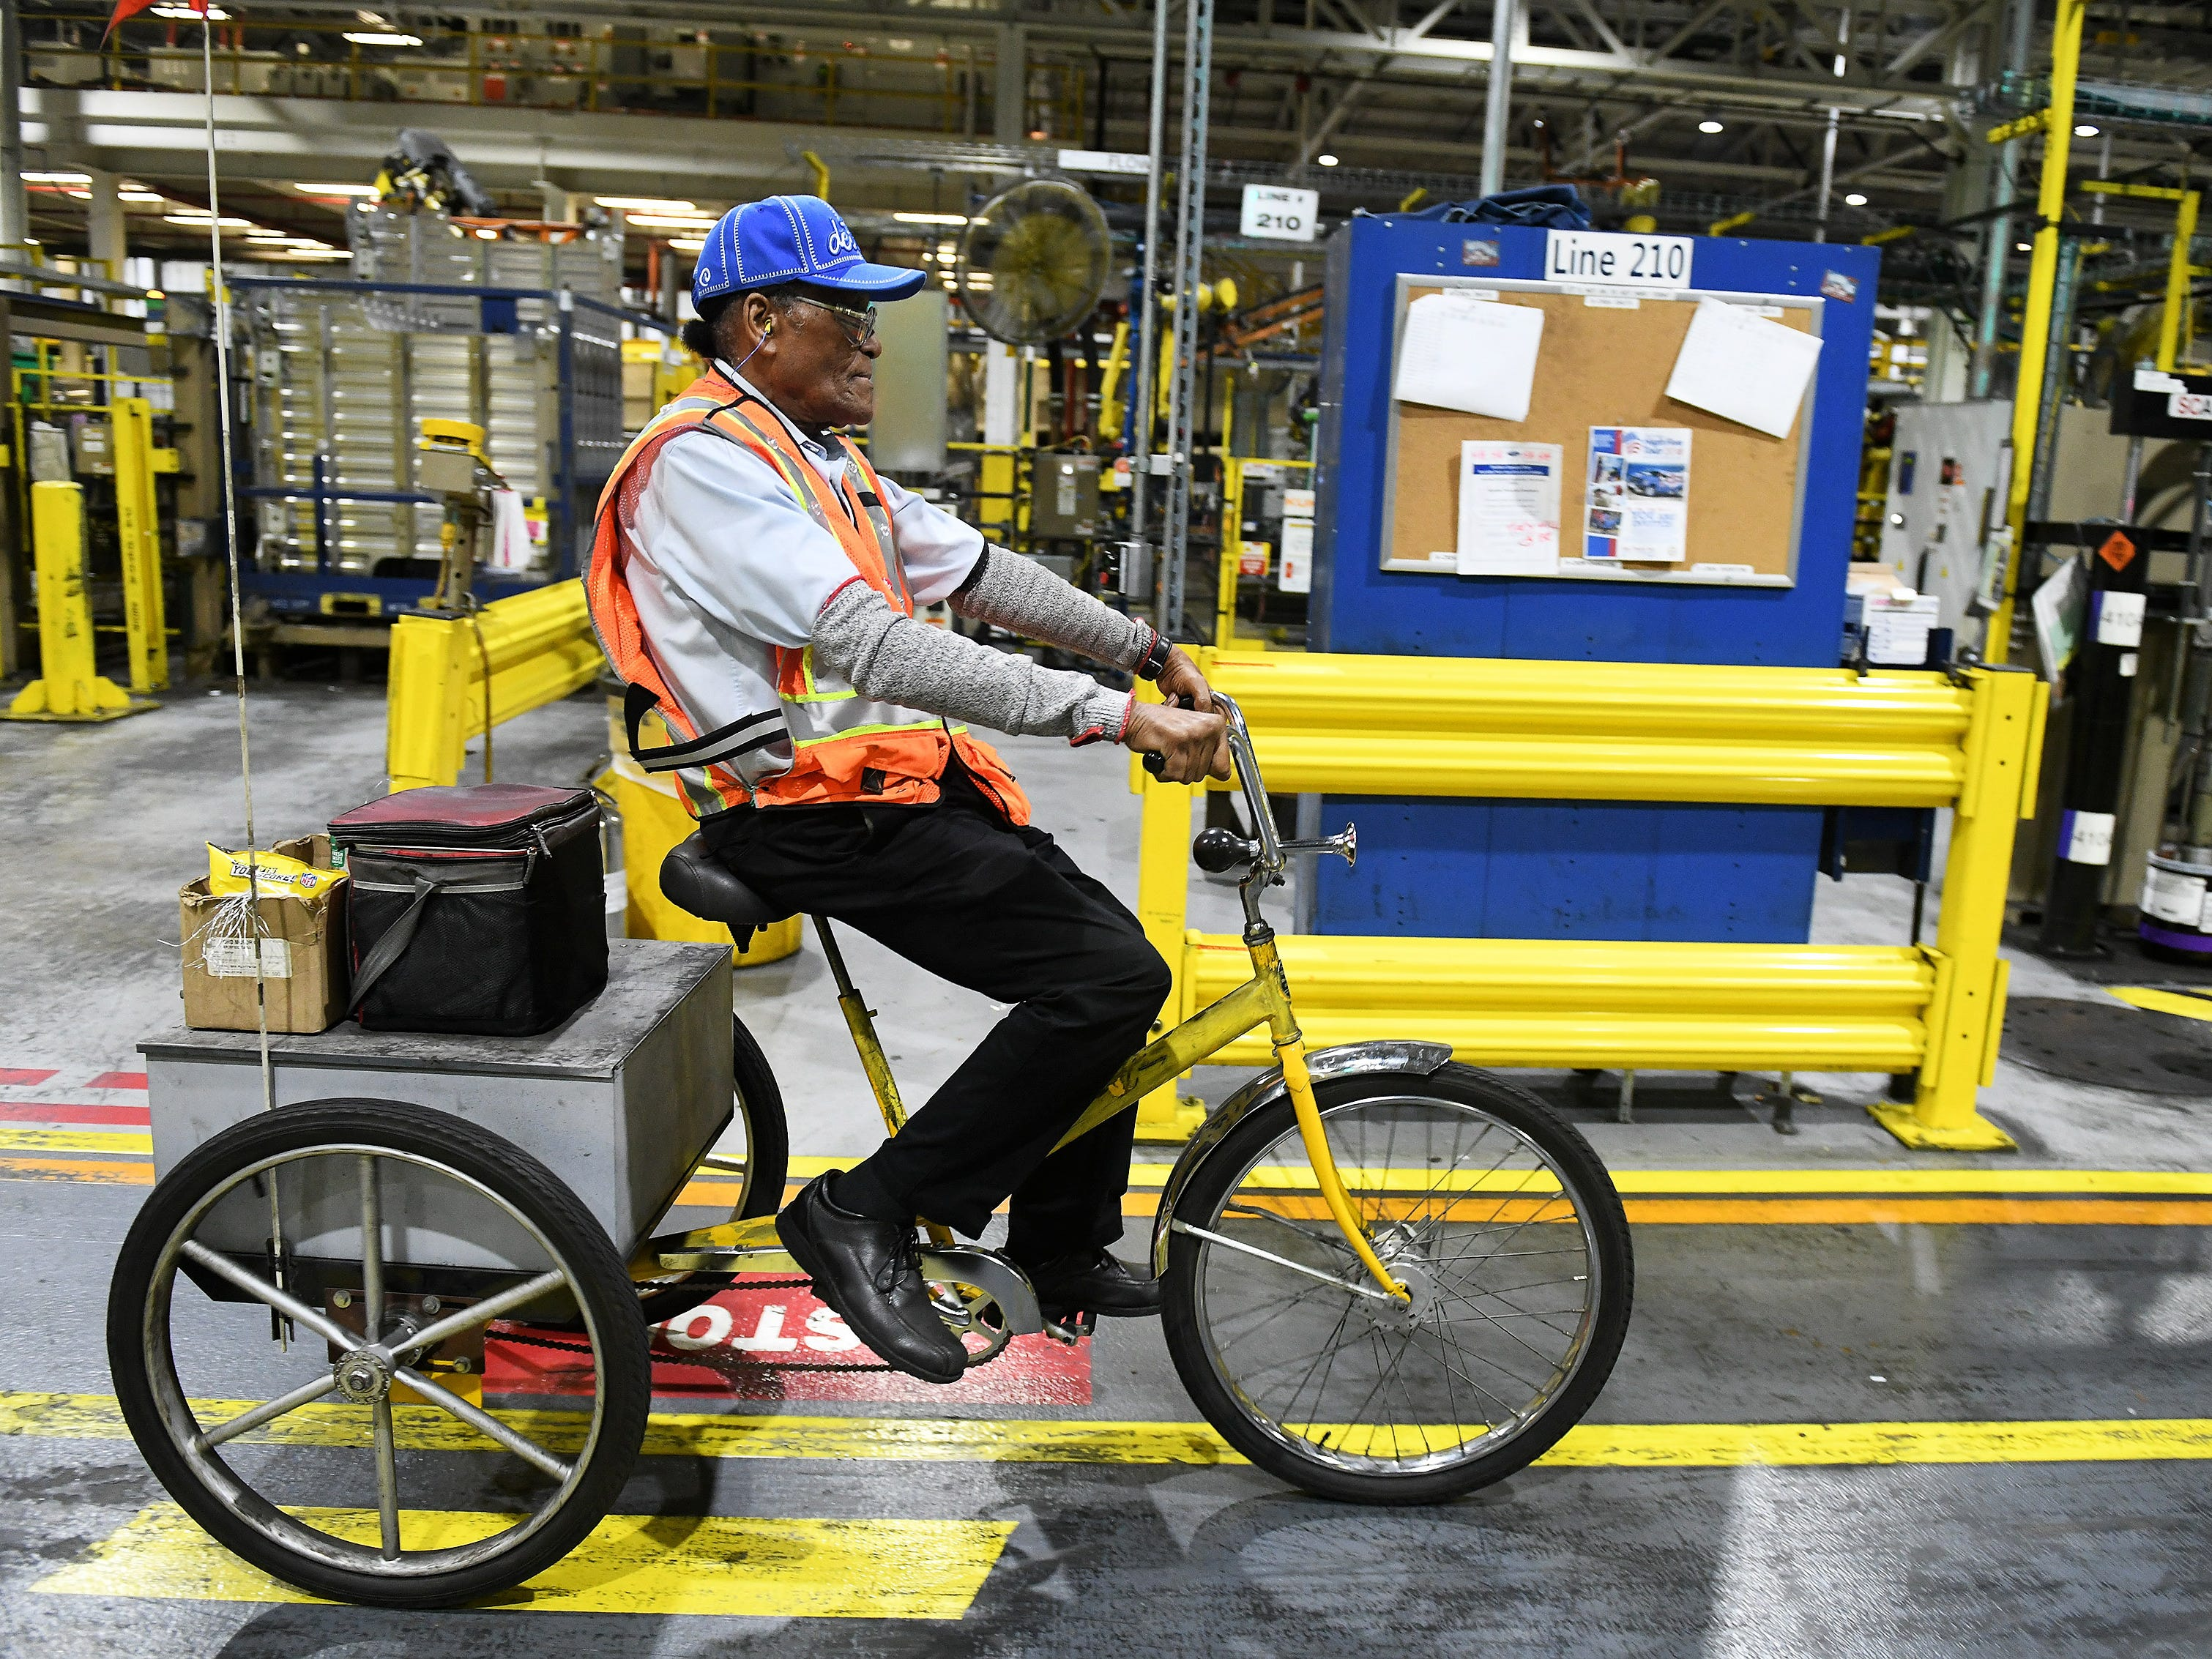 Willie Fulton, 86, rides a tricycle back and forth between the two lines he monitors at Ford Dearborn Stamping in the Rouge Complex .